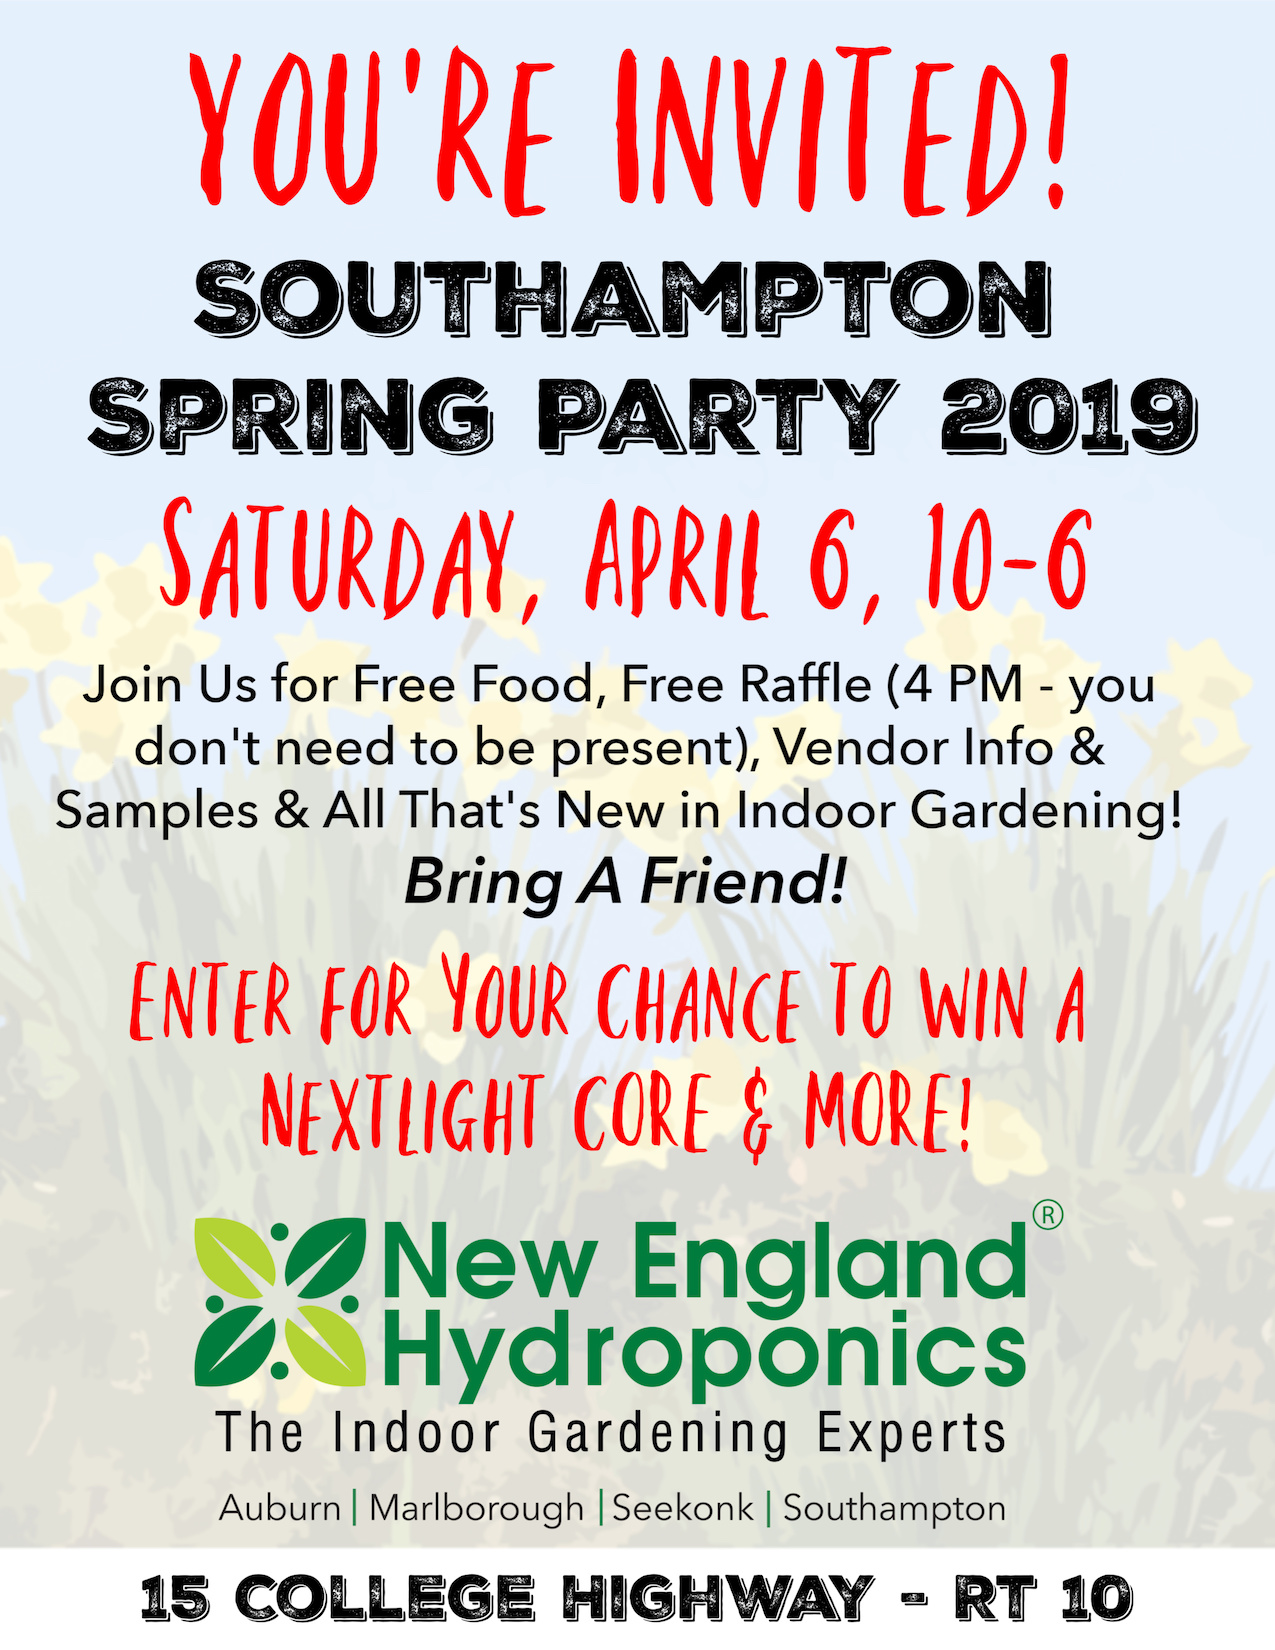 Southampton Spring Party is April 6 - Join Us!!!